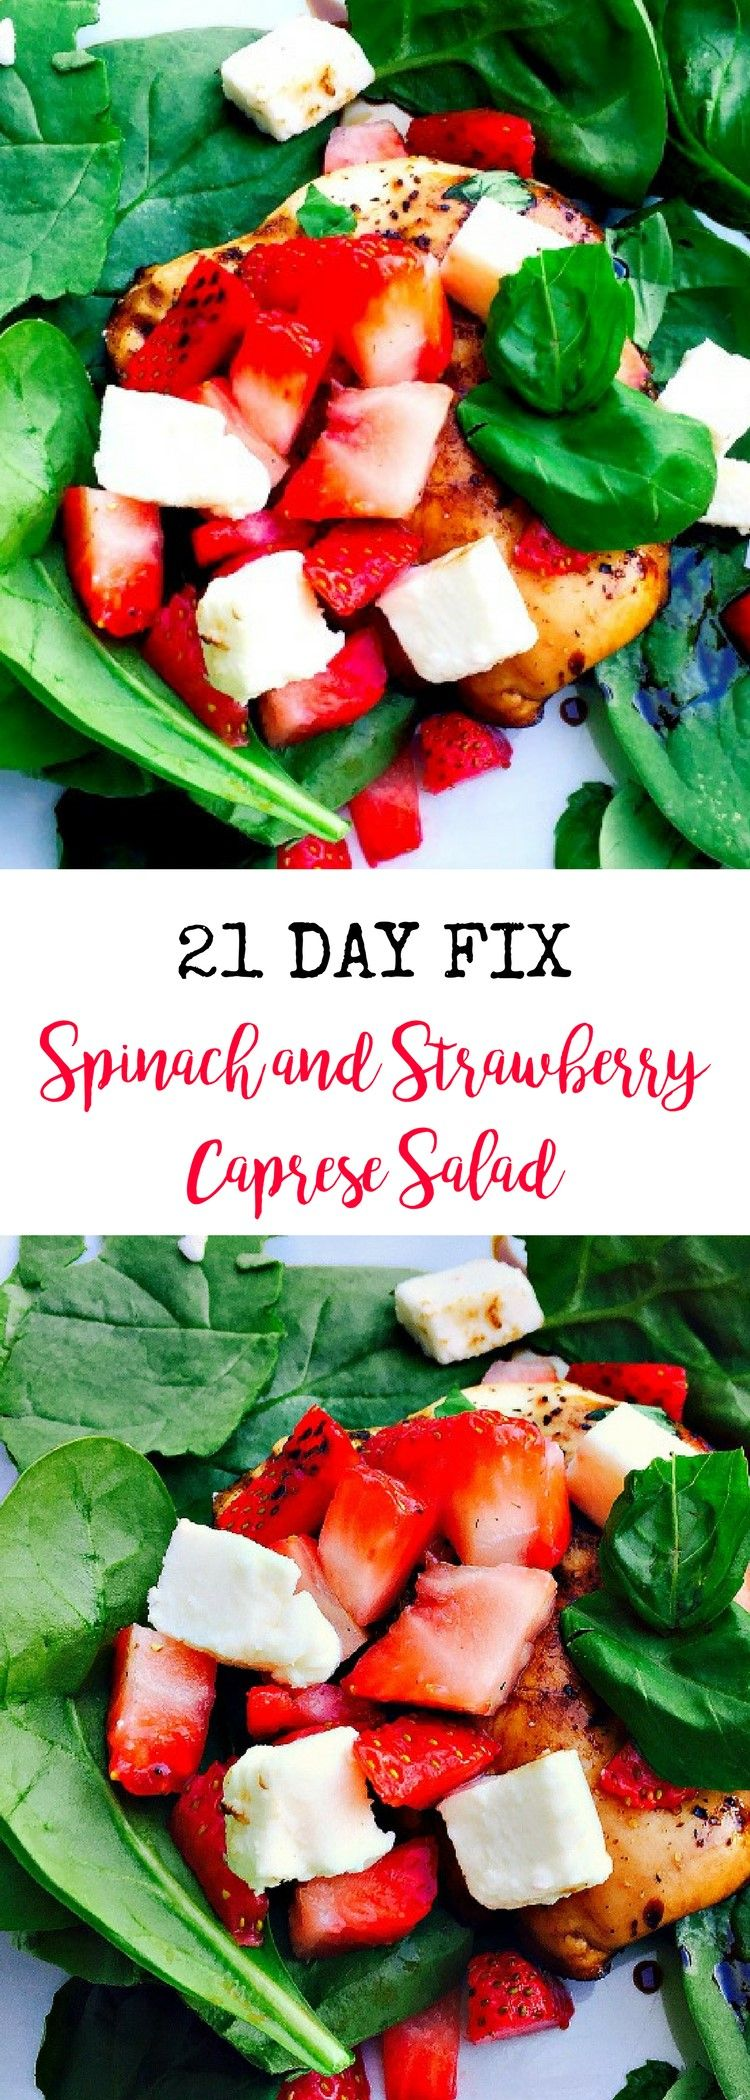 21 Day Fix Spinach and Strawberry Caprese Salad | Confessions of a Fit Foodie